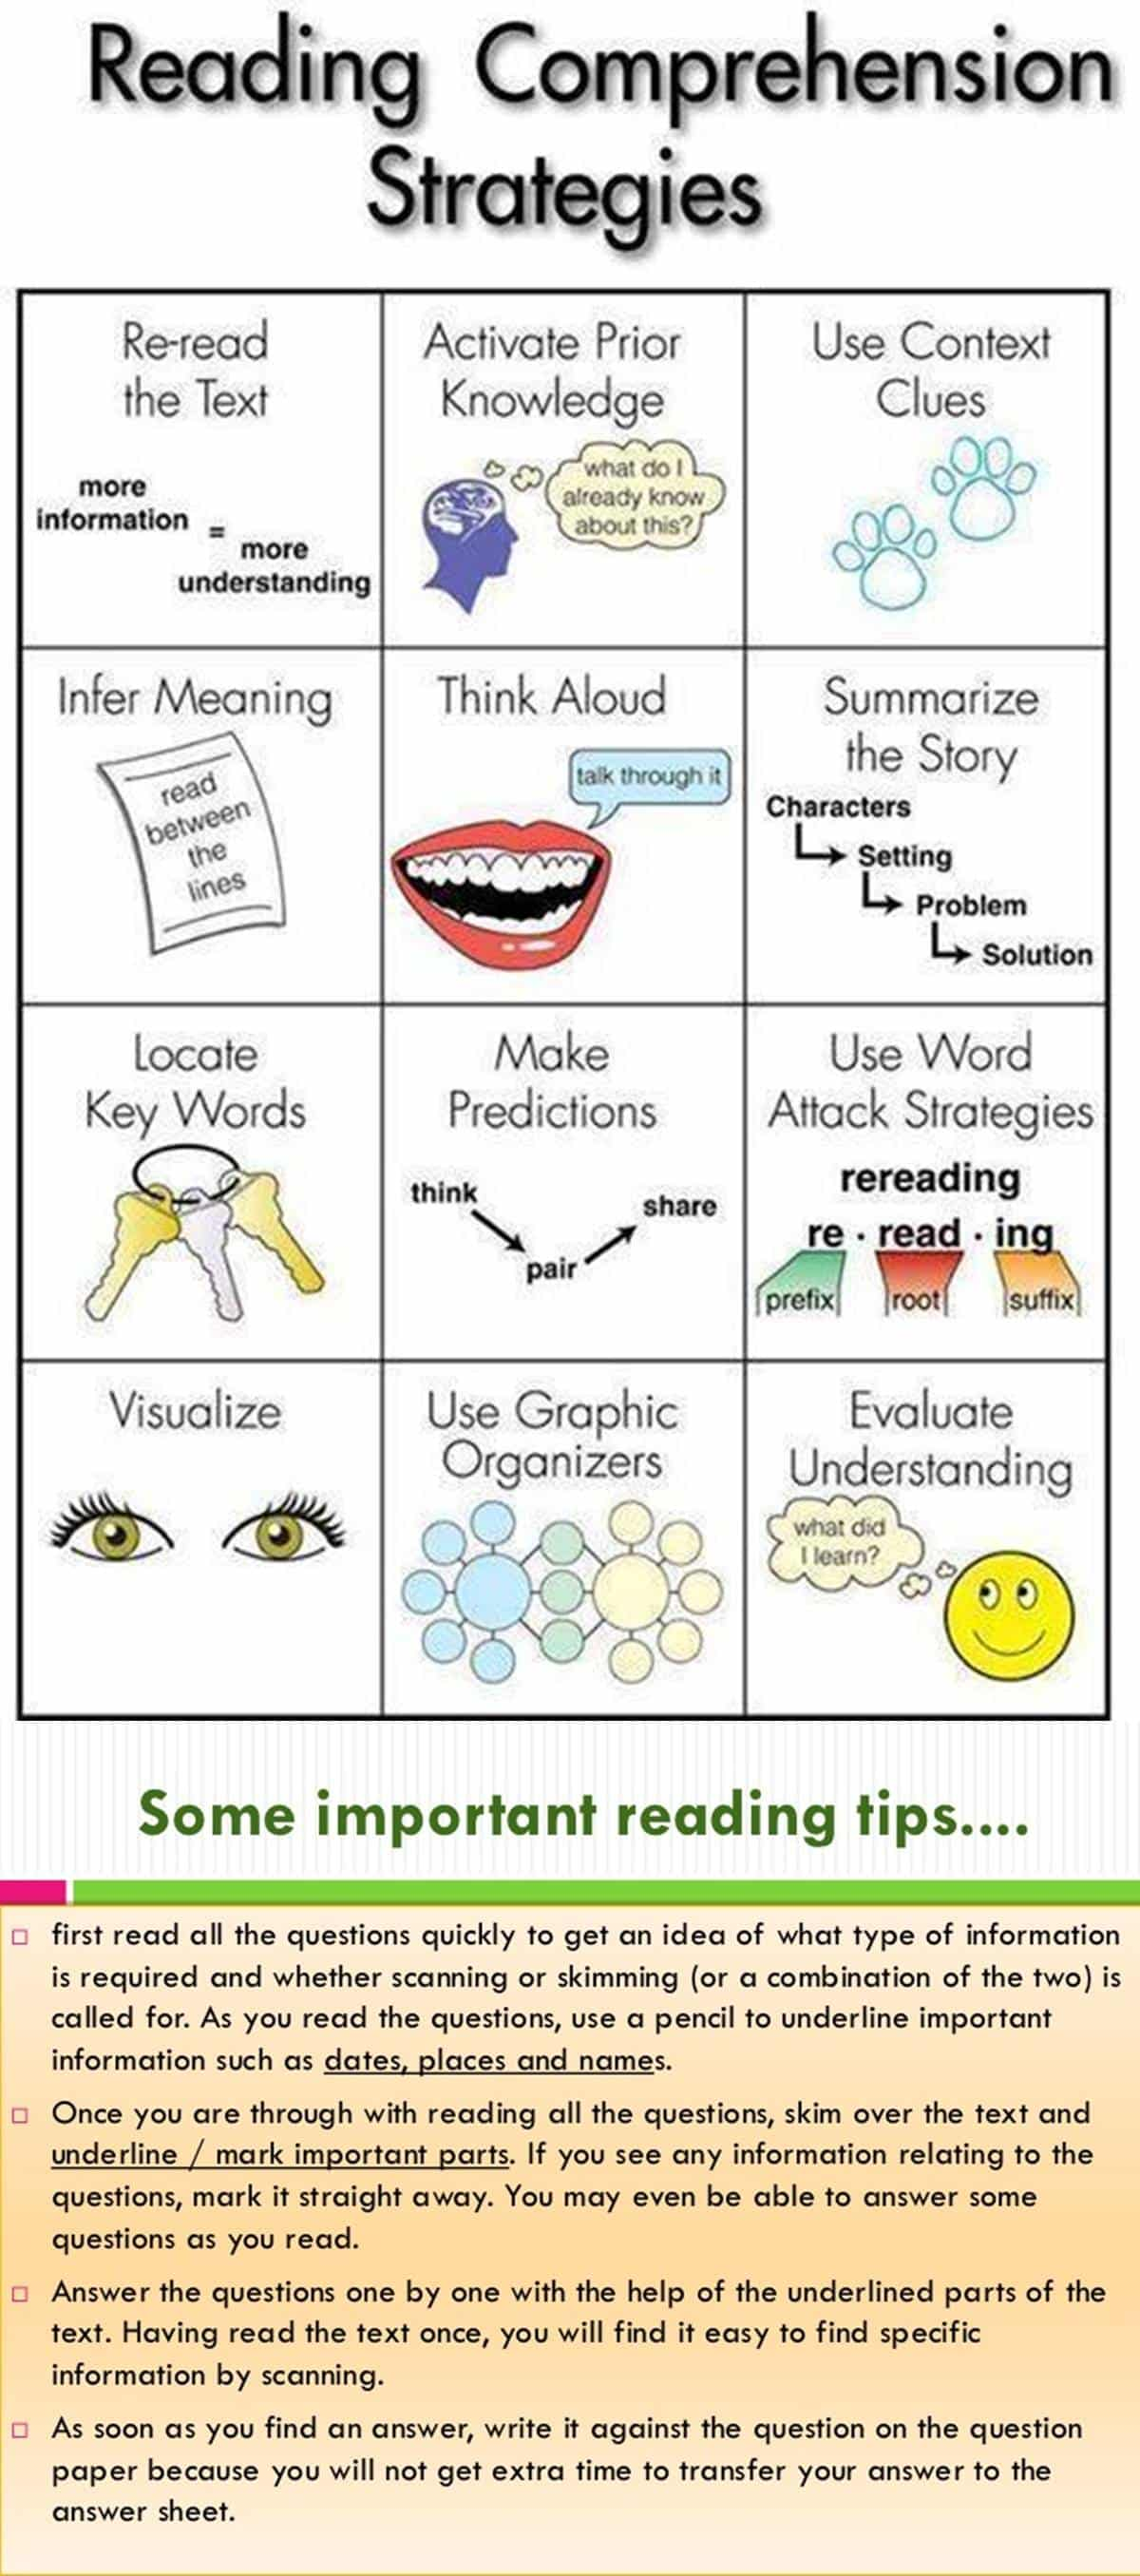 Reading Comprehension Strategies for English Language Learners